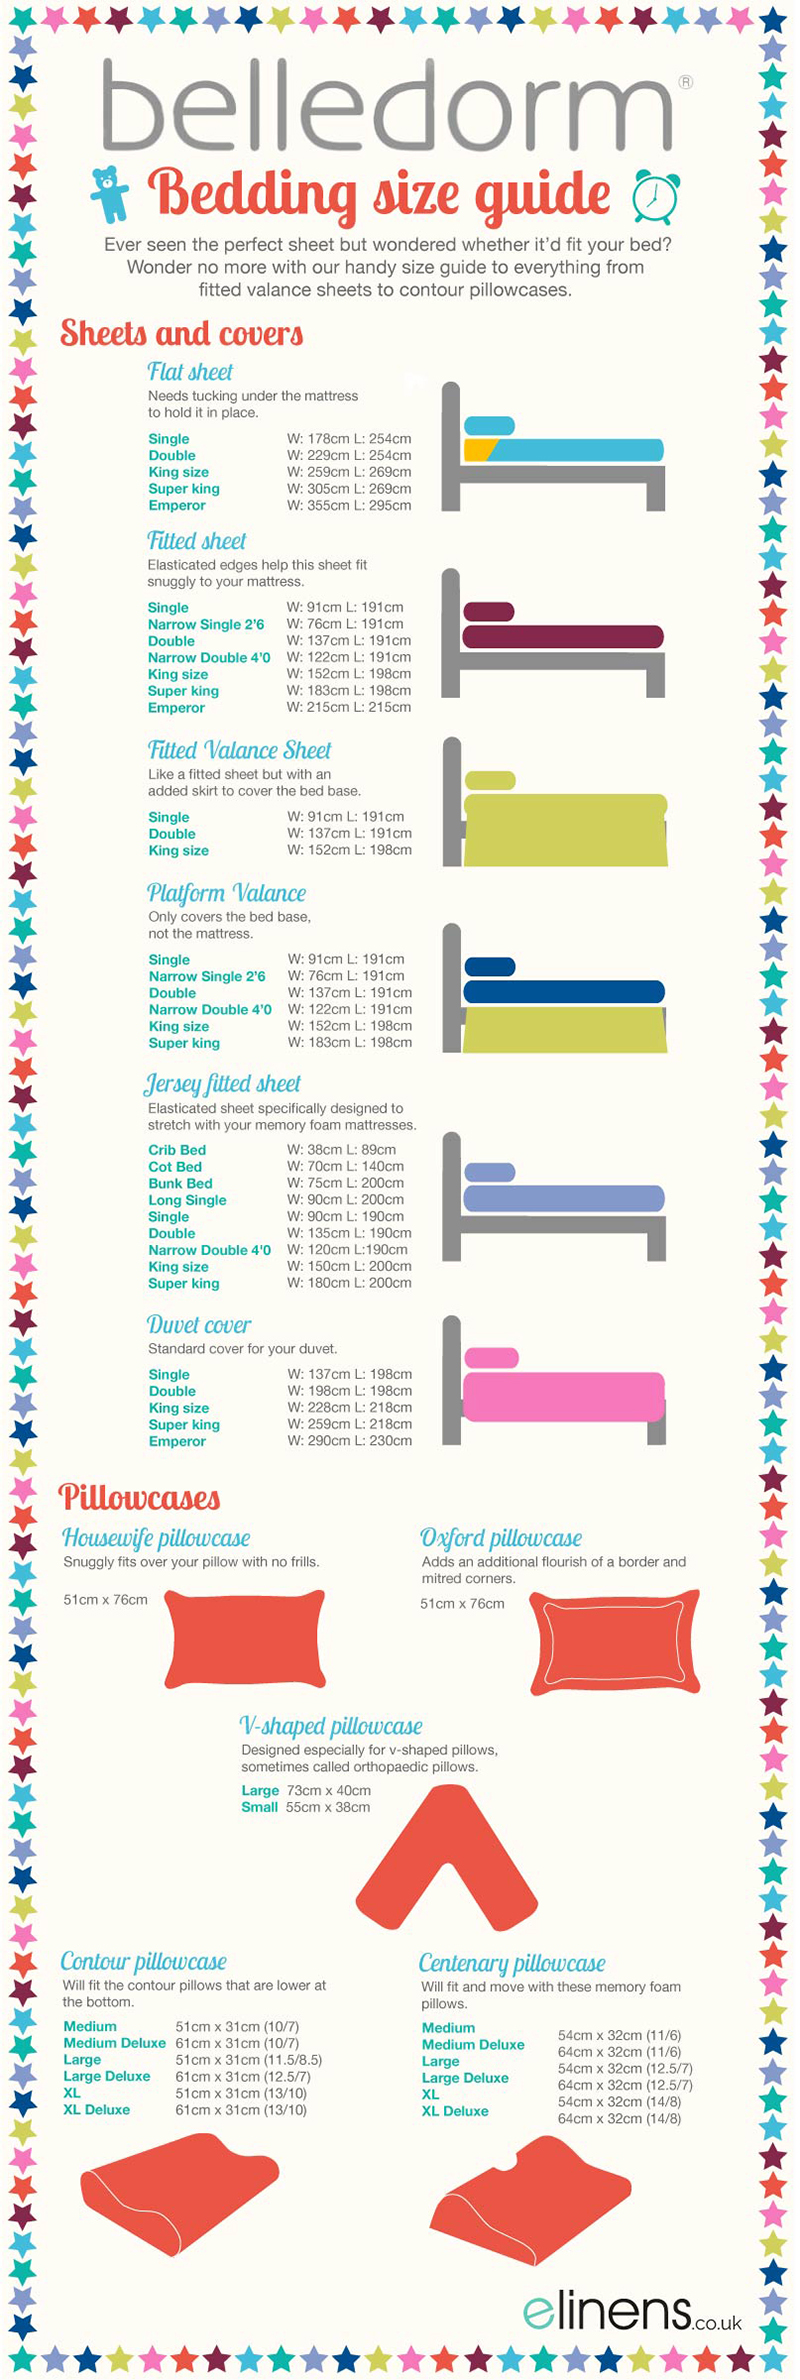 Pin by MakeMylifes on Duvets | Pinterest | Duvet sizes, Bed and